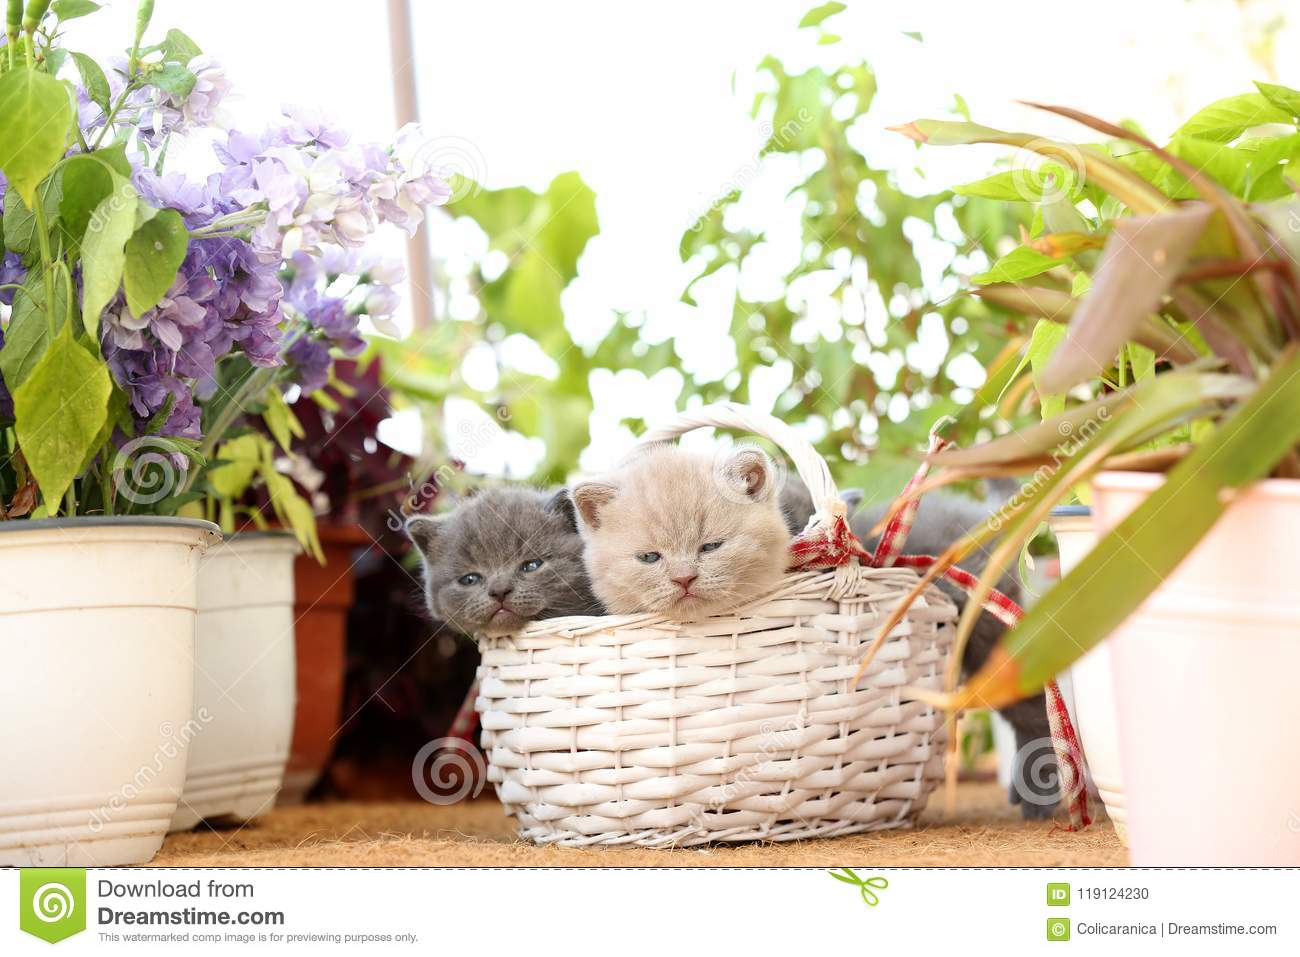 apartment balcony plants British Shorthair Kittens In Basket On Balcony Plants Stock